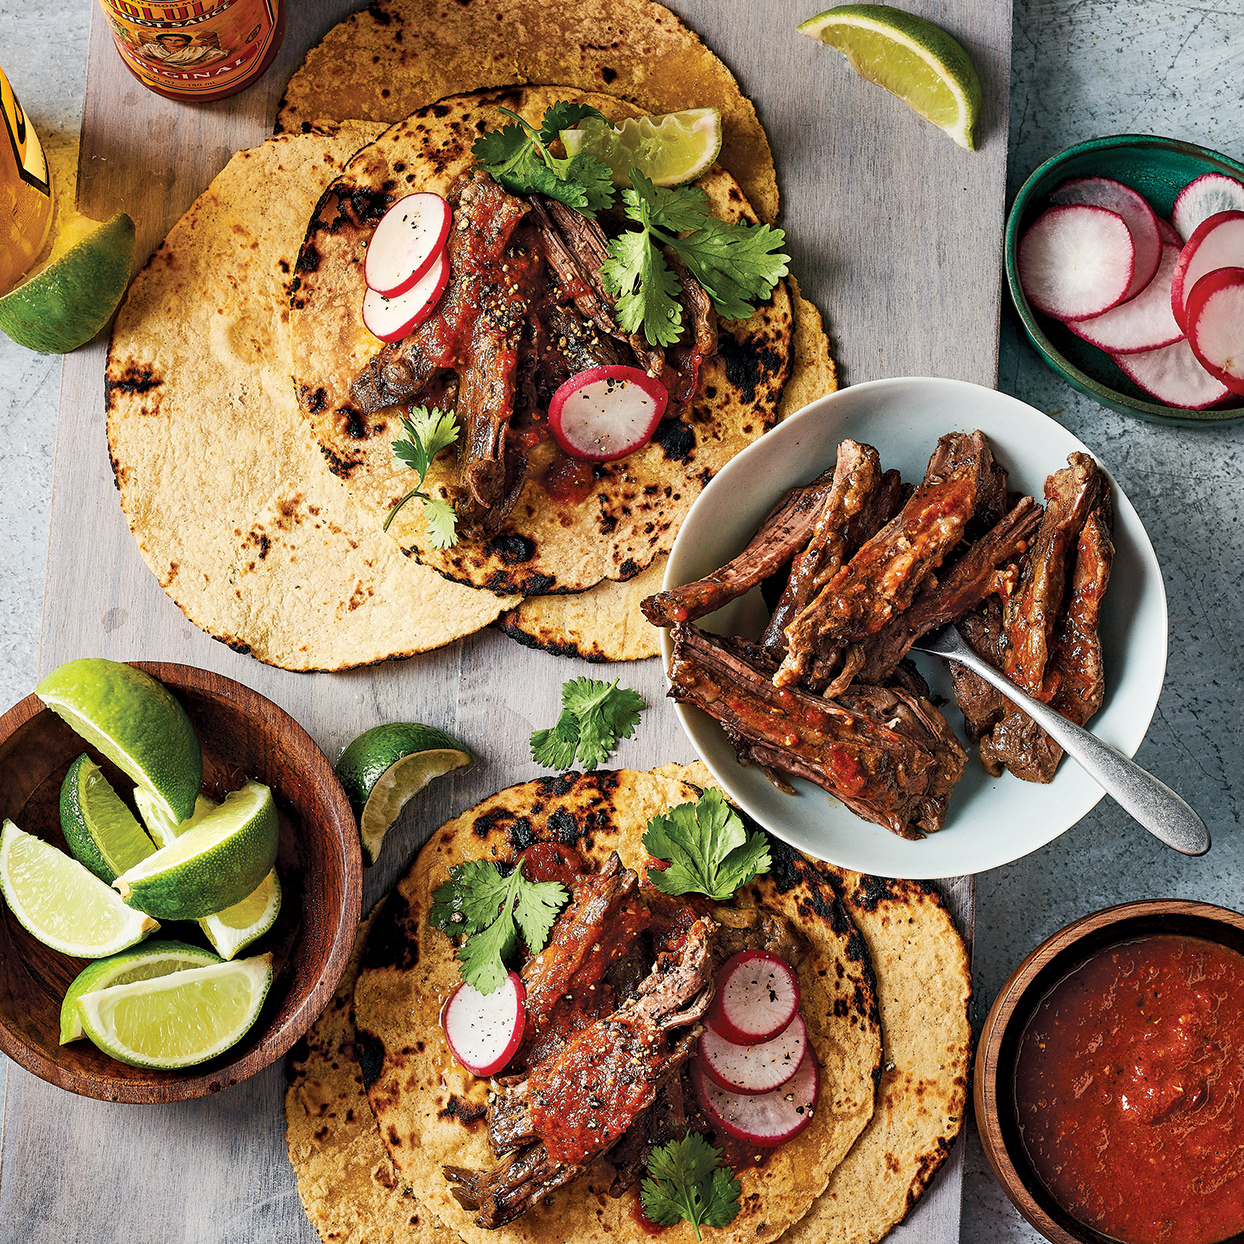 The meat in these slow-cooker tacos gets incredibly tender, thanks to plenty of time in the crock pot. The sauce in this dish is smoky and rich from the chiles, onion, fire-roasted tomatoes and beef. Toast the tortillas, if you'd like. Source: Everyday Slow Cooker